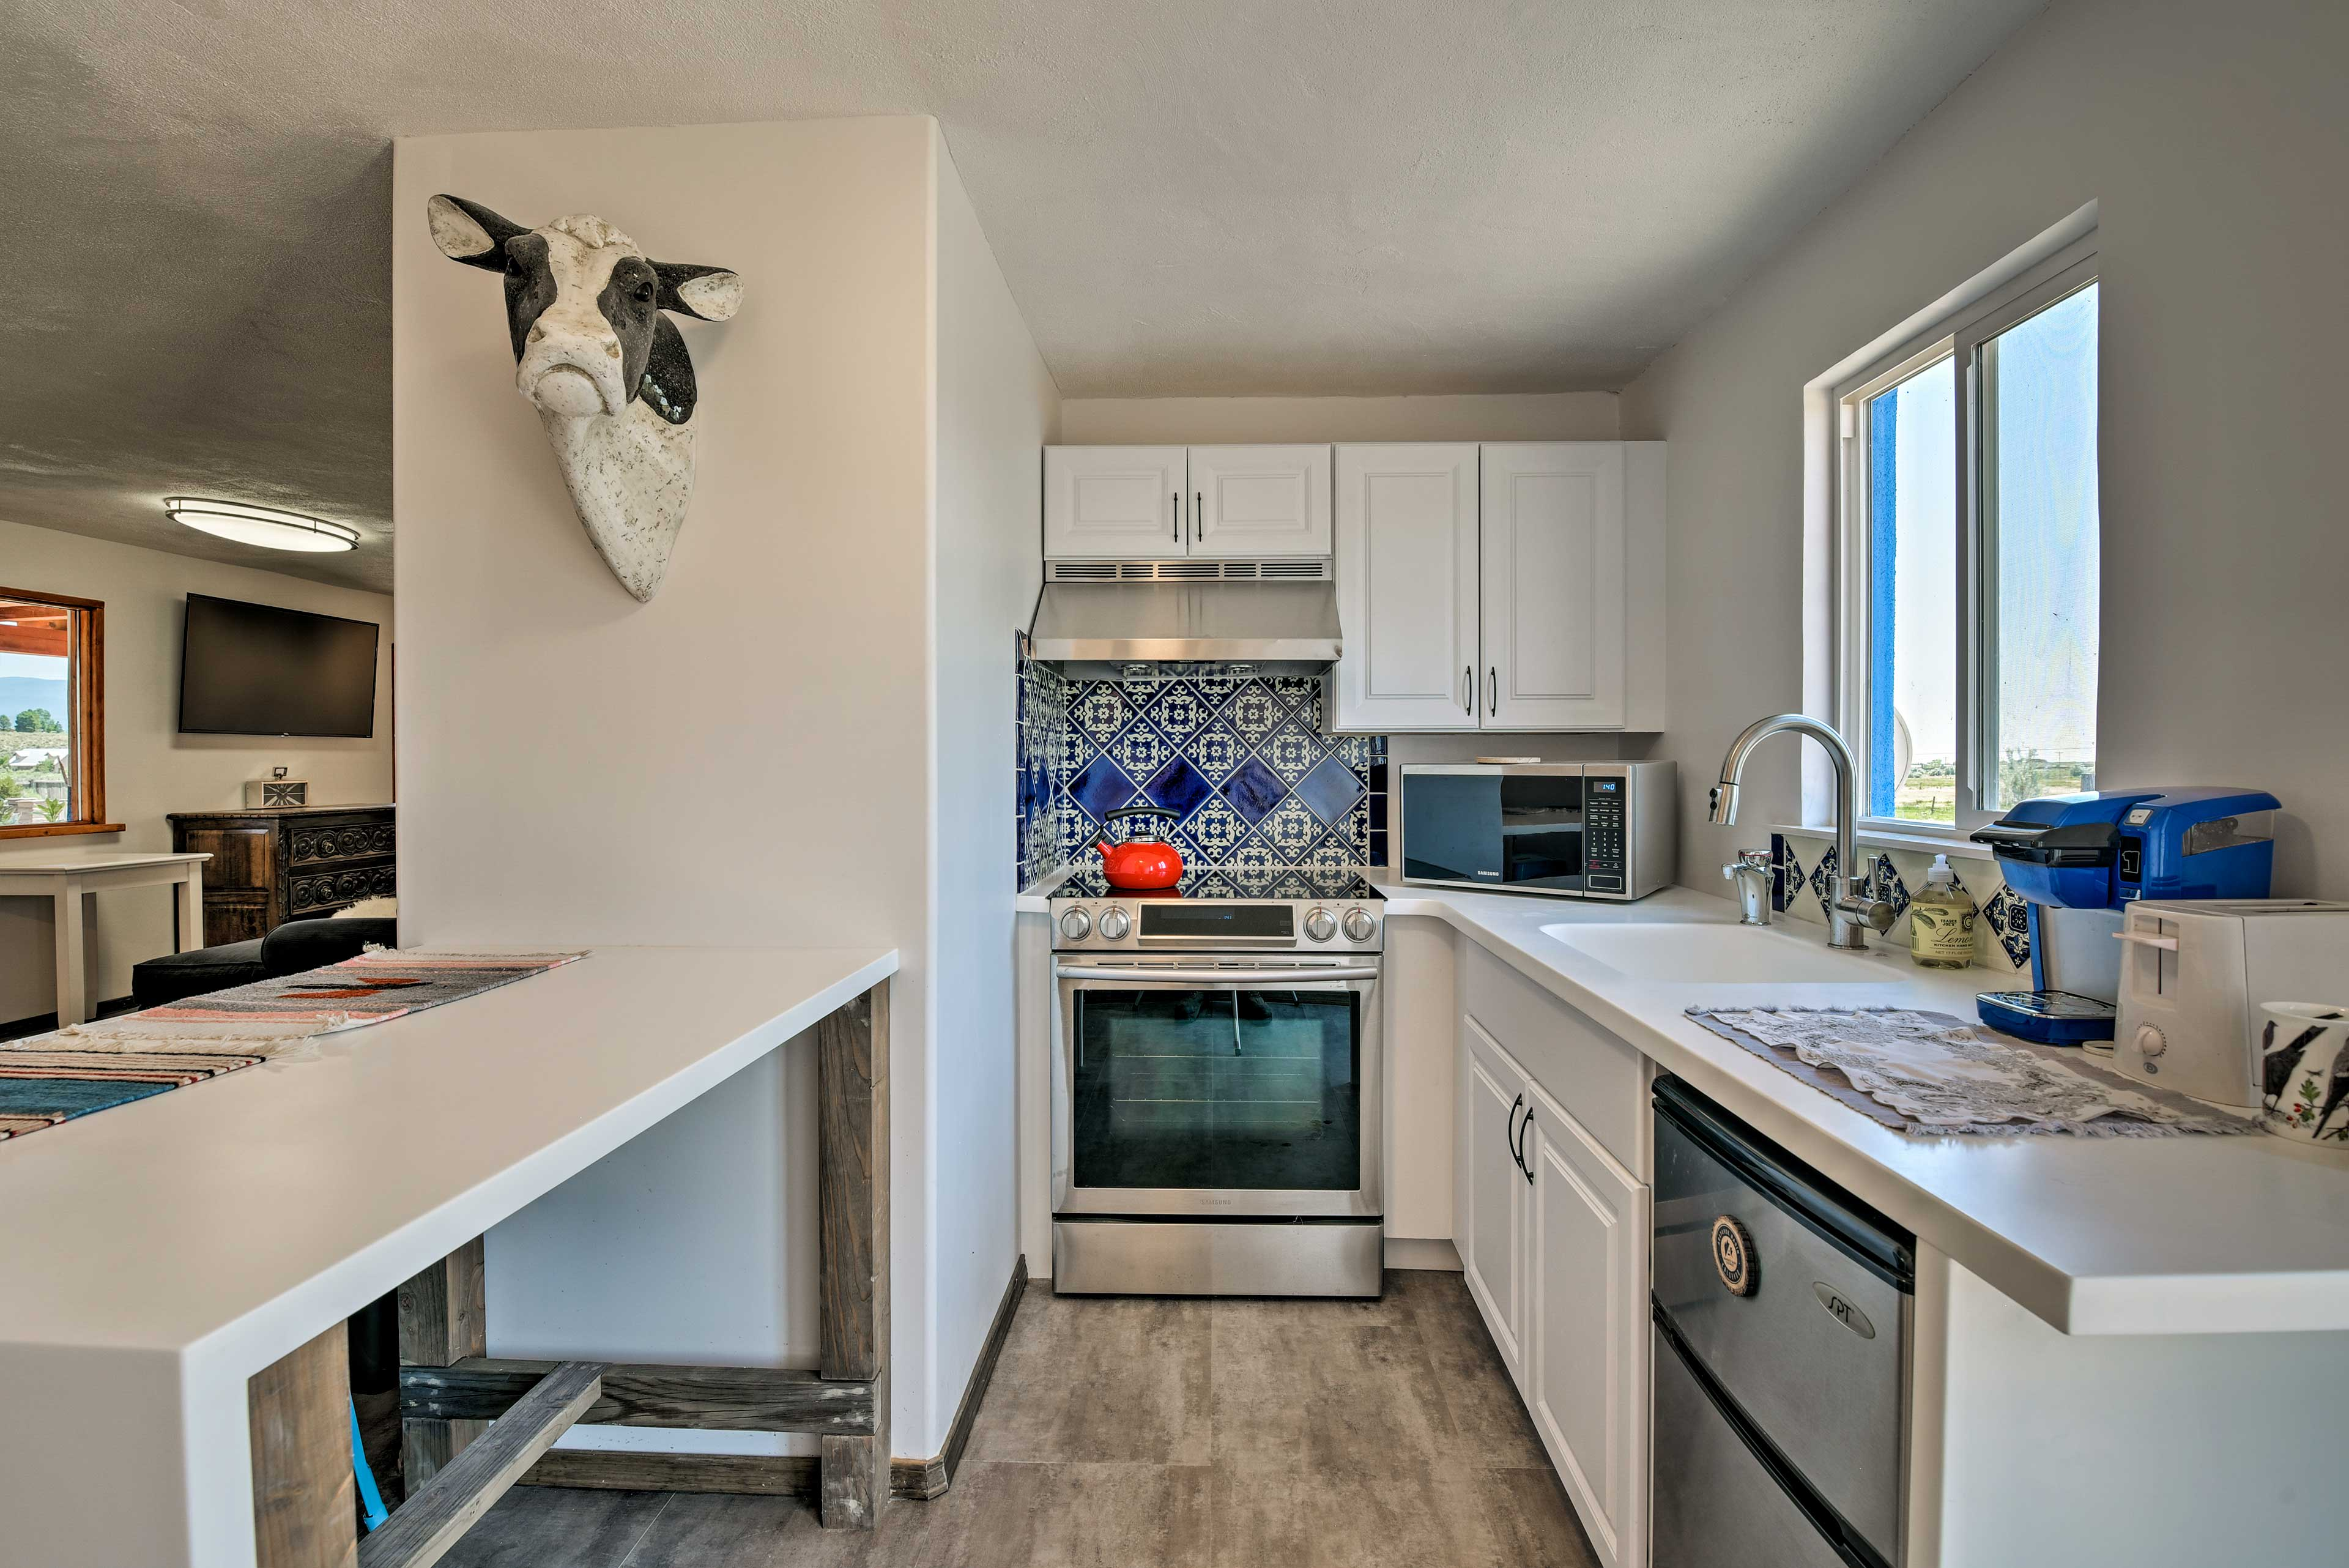 The custom tiling gives the kitchen a unique southwestern feel.